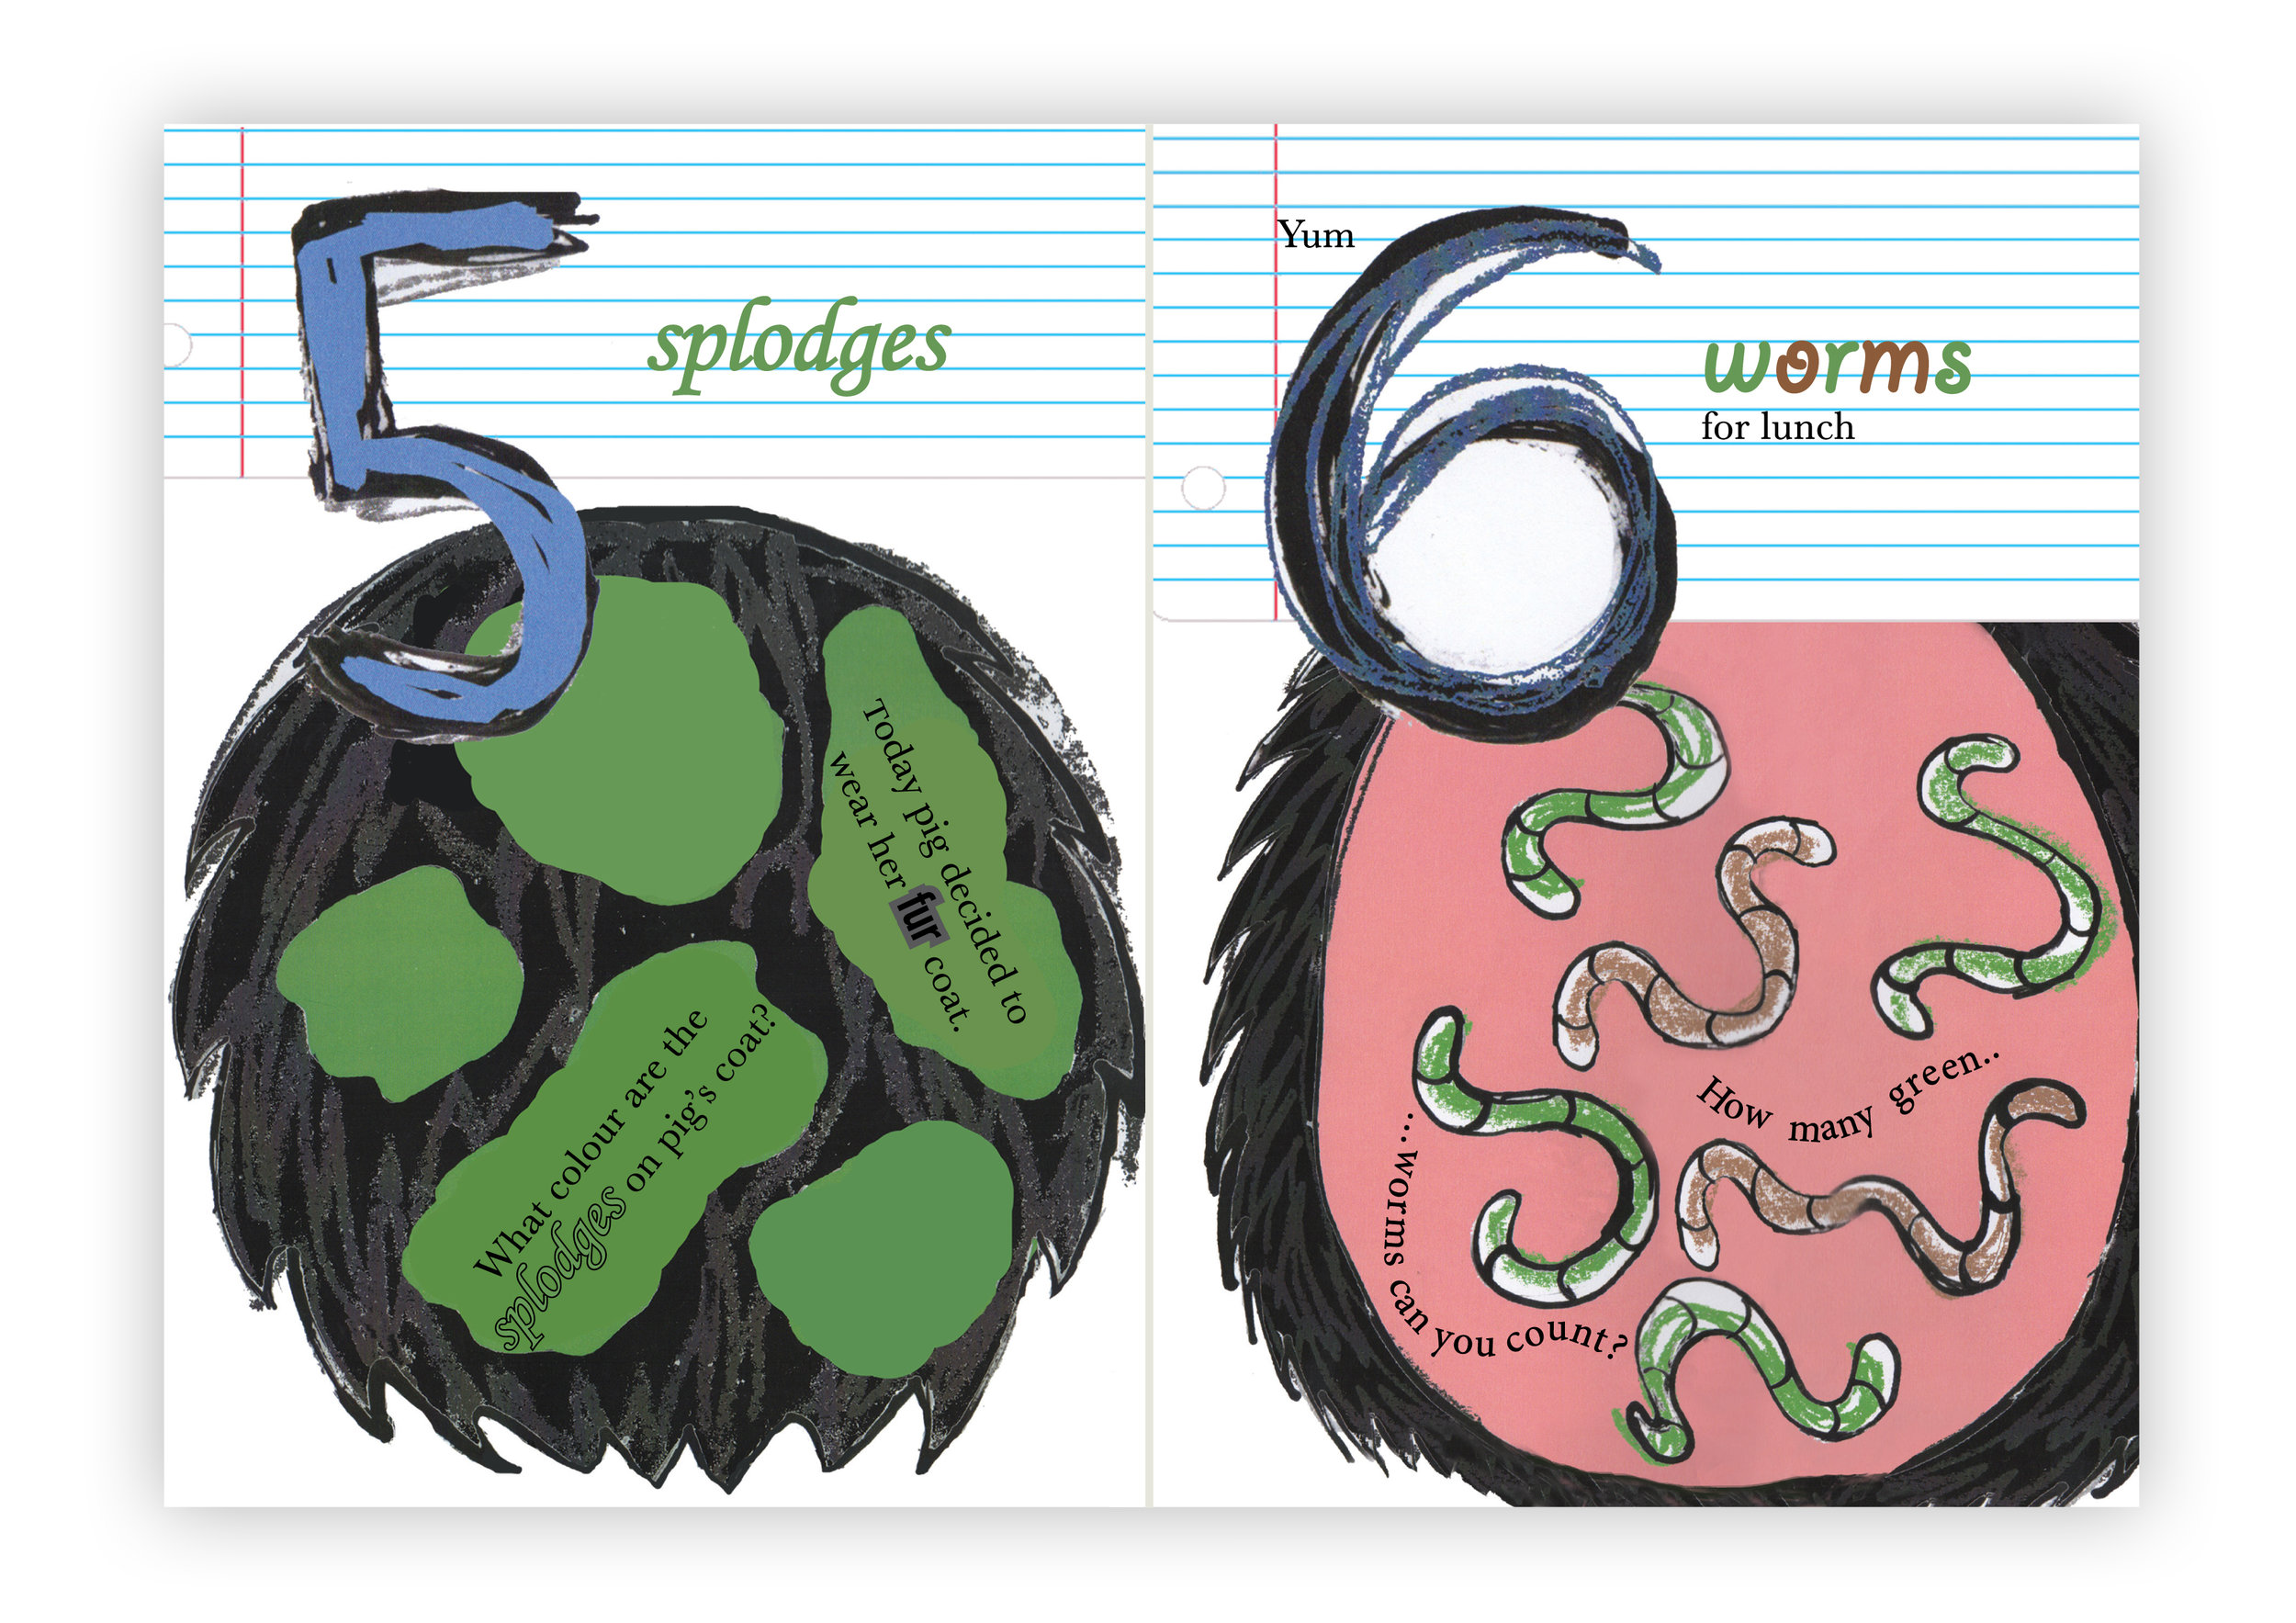 The above illustration is from my self published book '1-10' written and illustrated by Heidi Osten. The original illustrations and text were created in 2002, then the entire book has been reworked during 2014 and 2015. This book addresses the numbers from 1-10 with funny, grungy illustrations that accompany the numbers and written words. This book will contribute to your child's numeracy and literacy skills in a fun way.